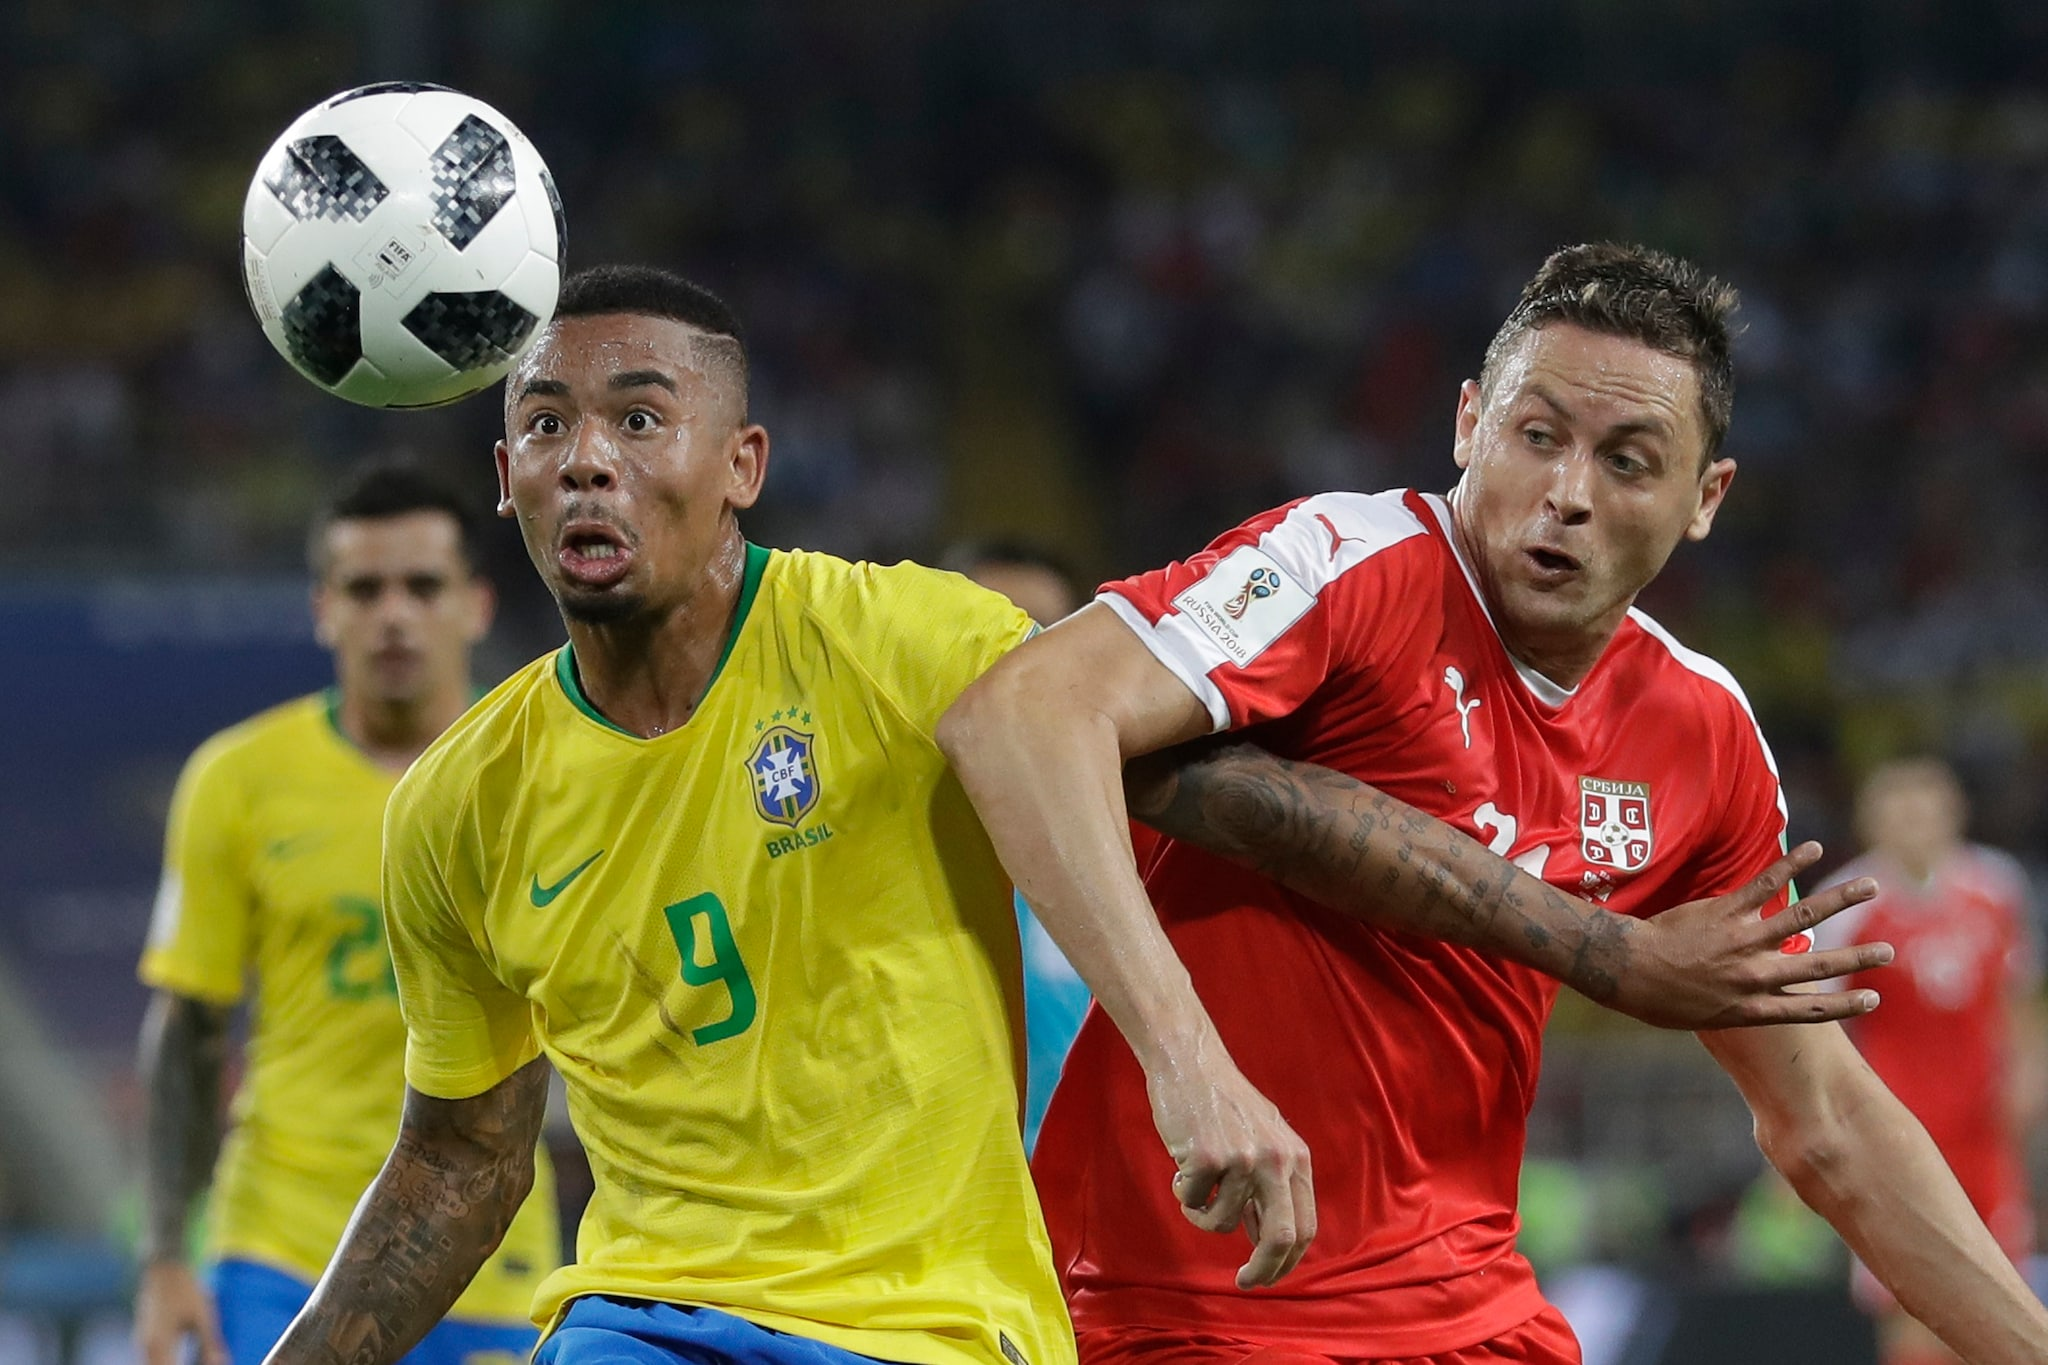 Brazil's Gabriel Jesus, left, fights for the ball with Serbia's Nemanja Matic during the group E match between Serbia and Brazil, at the 2018 soccer World Cup in the Spartak Stadium in Moscow, Russia, Wednesday, June 27, 2018. (AP Photo/Matthias Schrader)